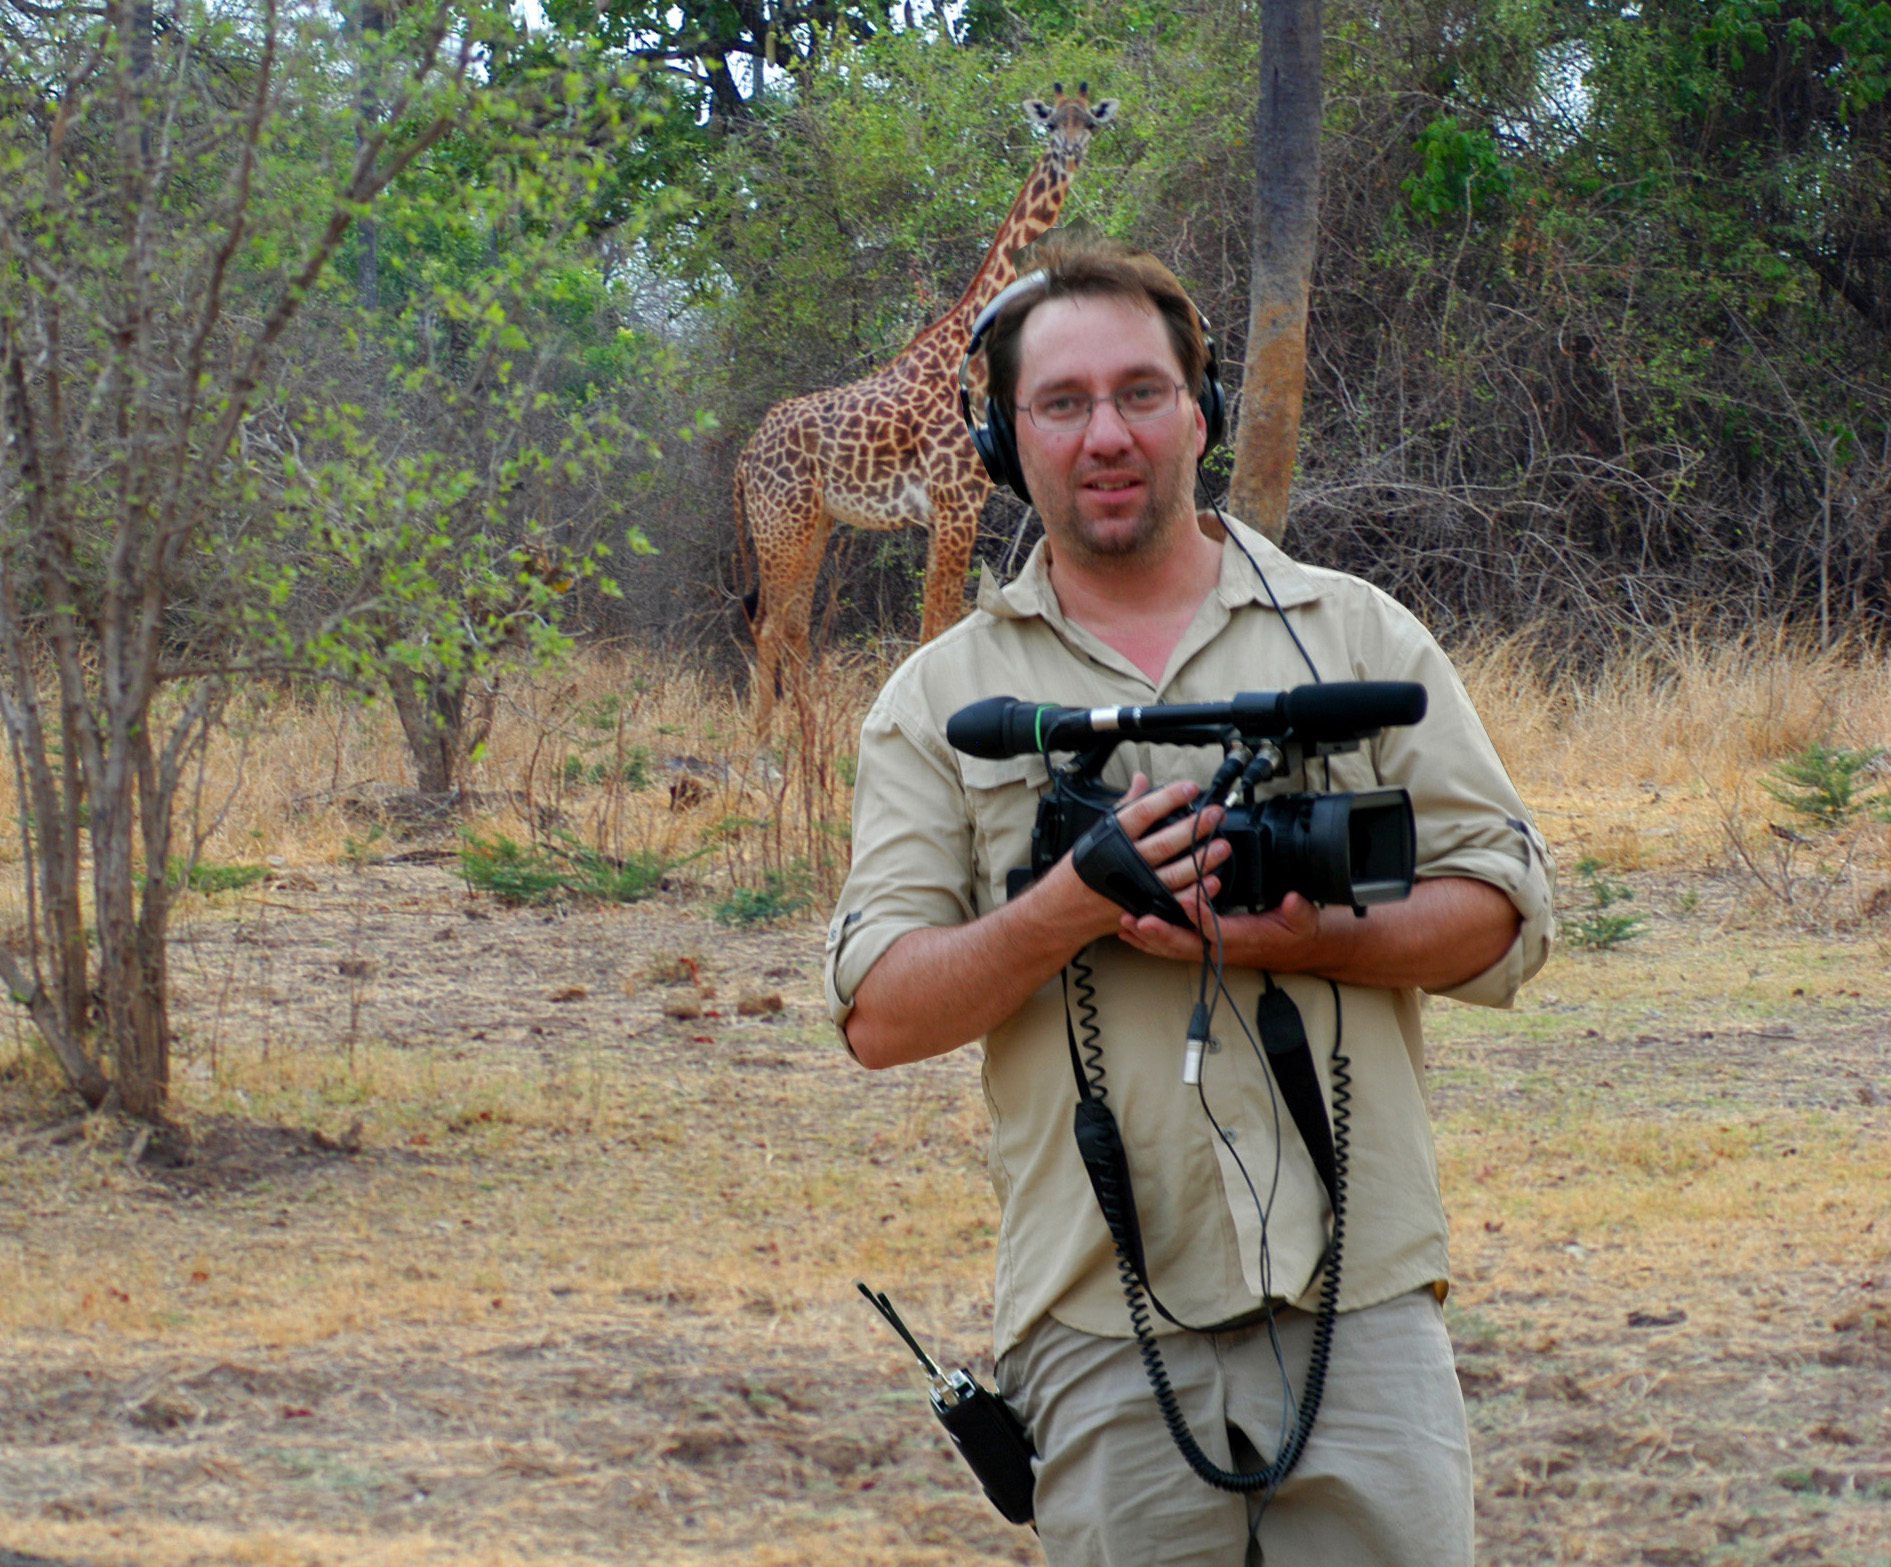 Filming a television show in Zambia, Africa